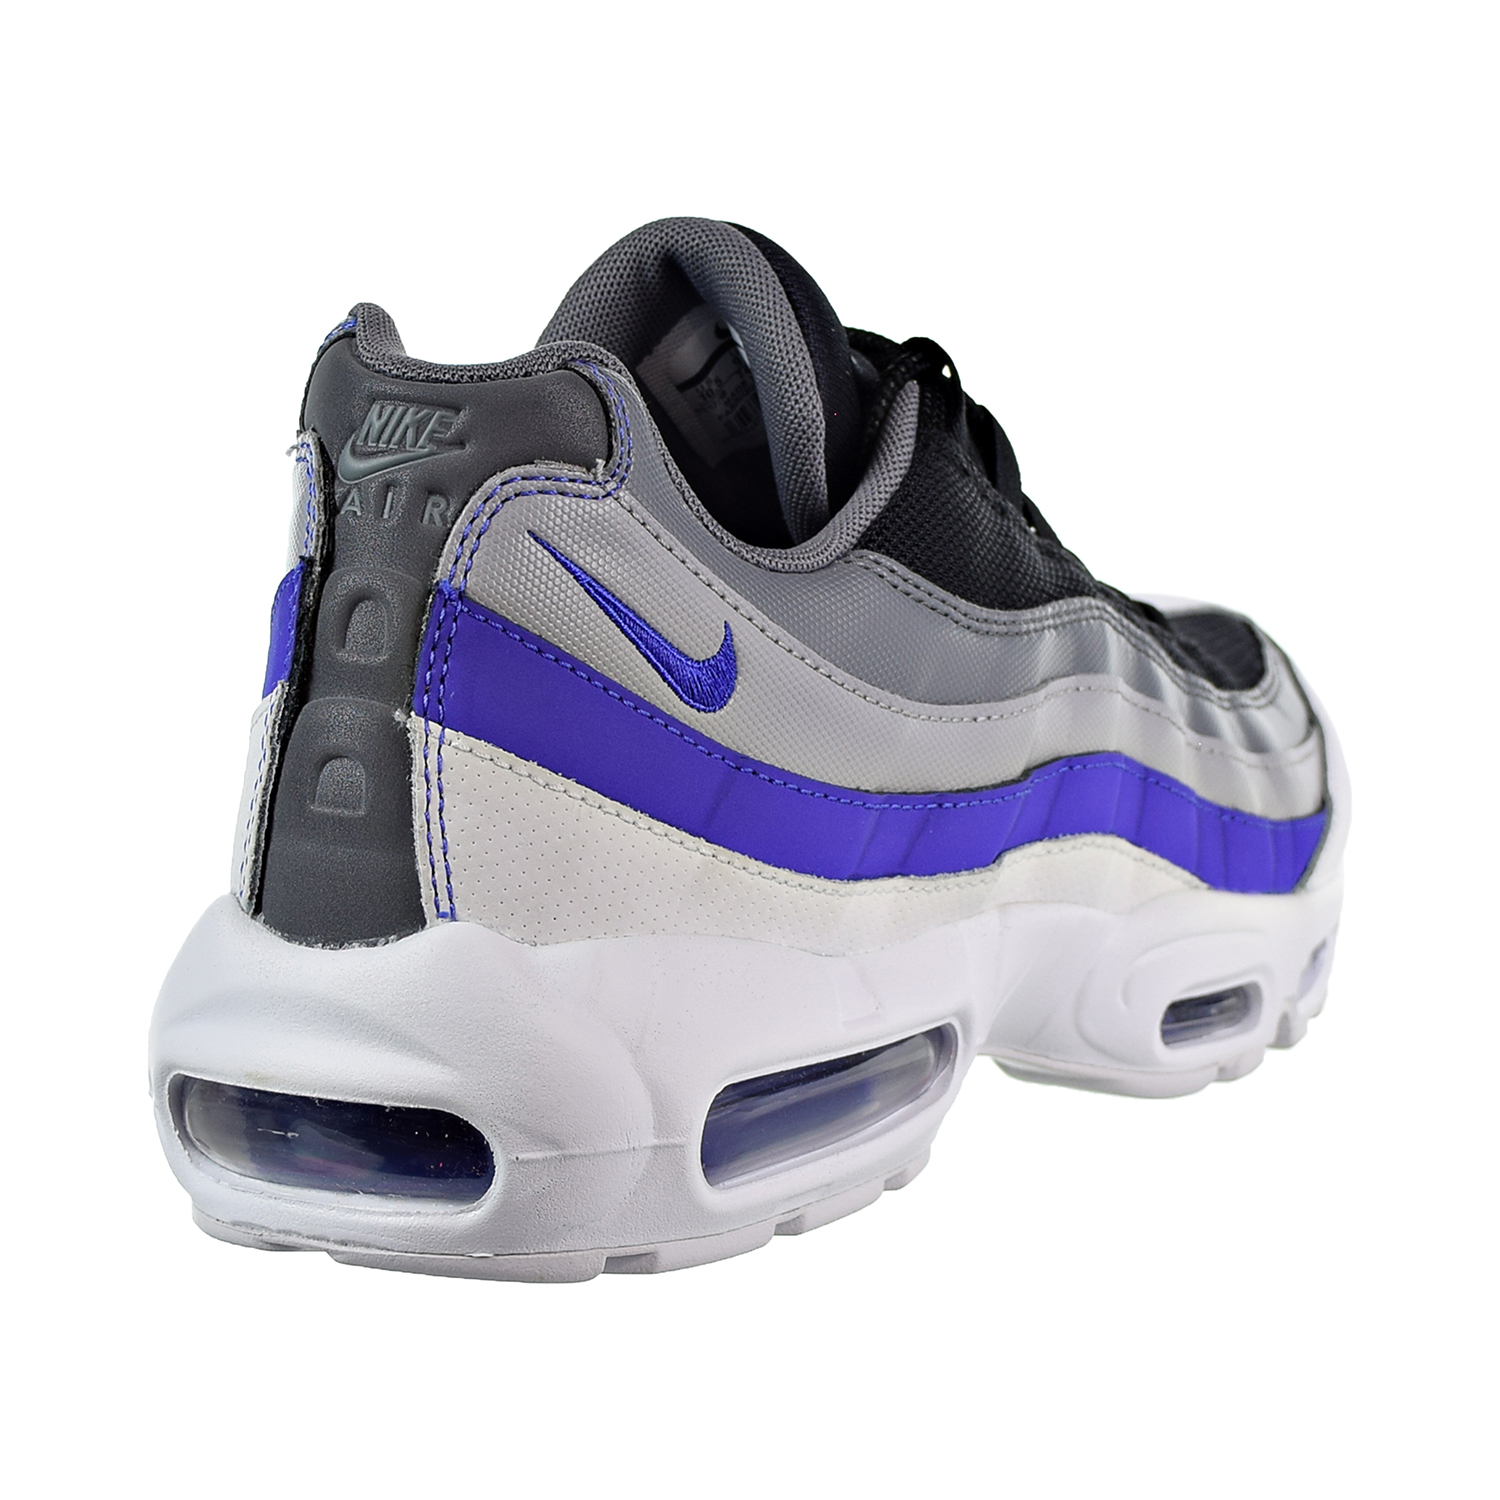 promo code eb3a2 150fe Nike Air Max 95 Essential Men s Shoes White Persian Violet Cool Grey 749766- 110